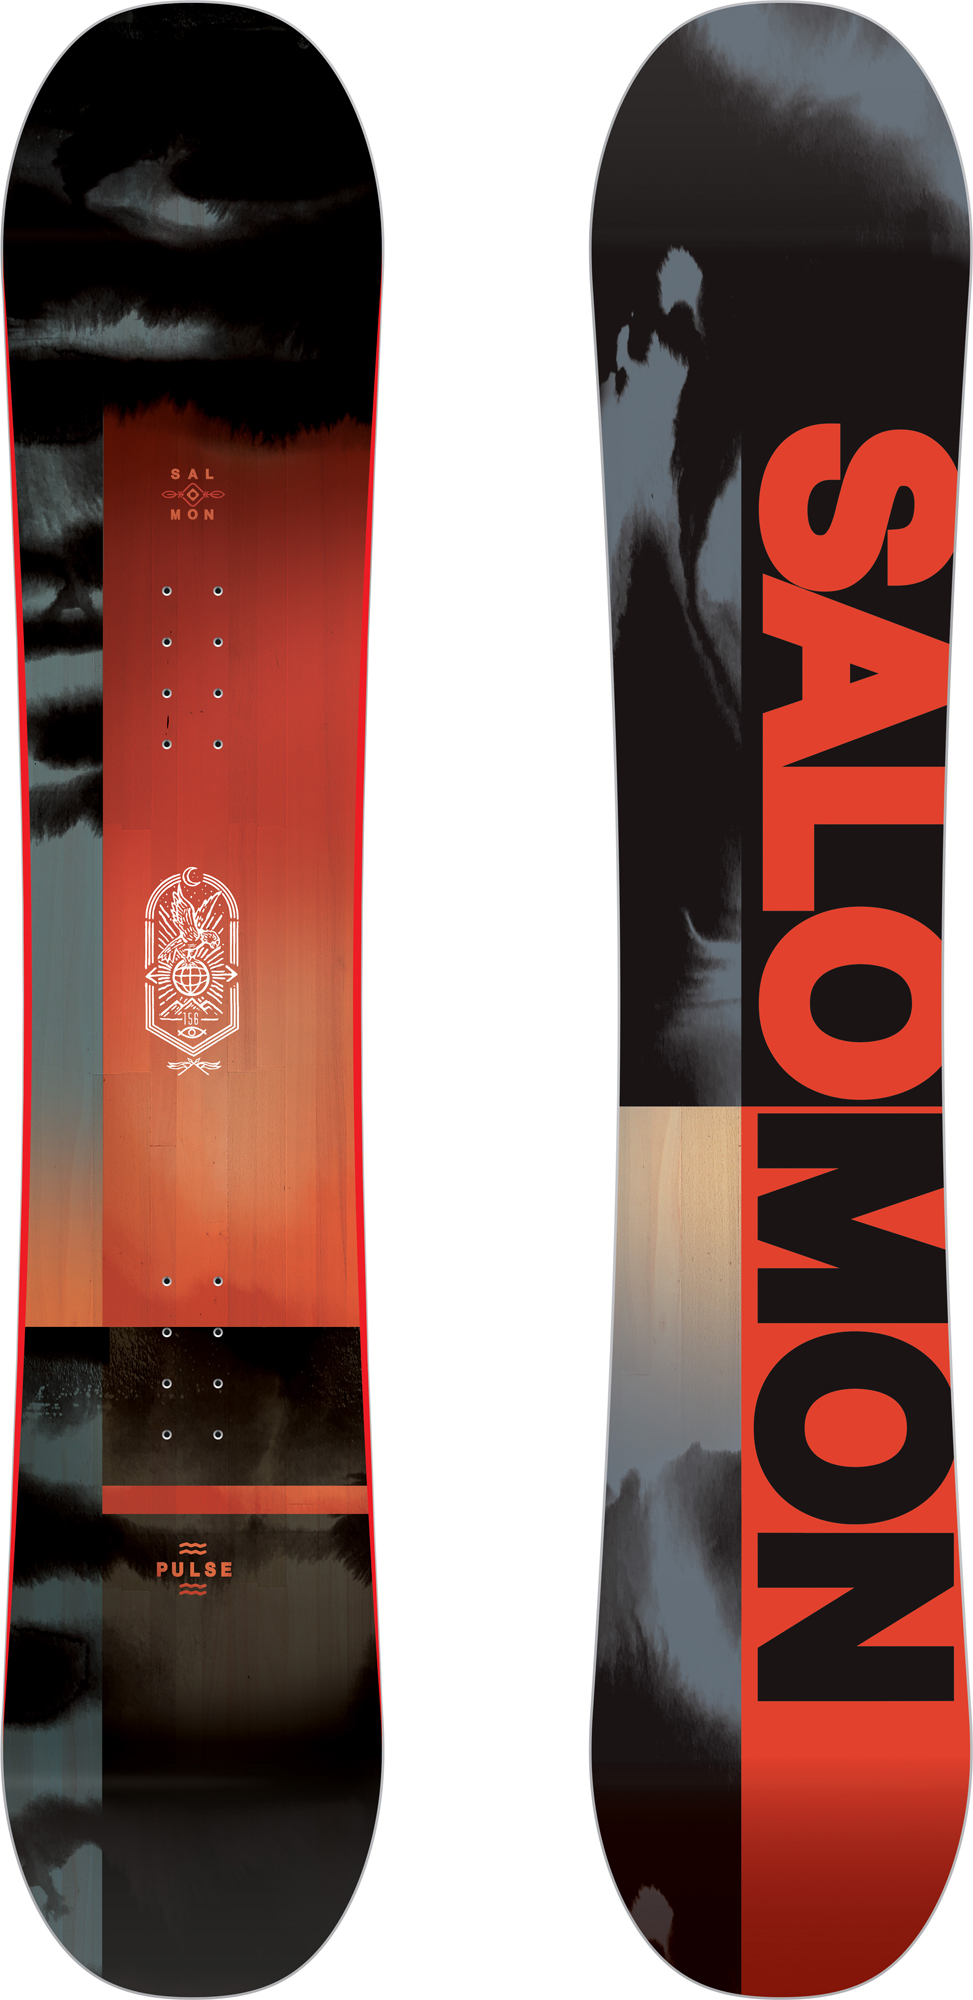 Salomon PULSE цена